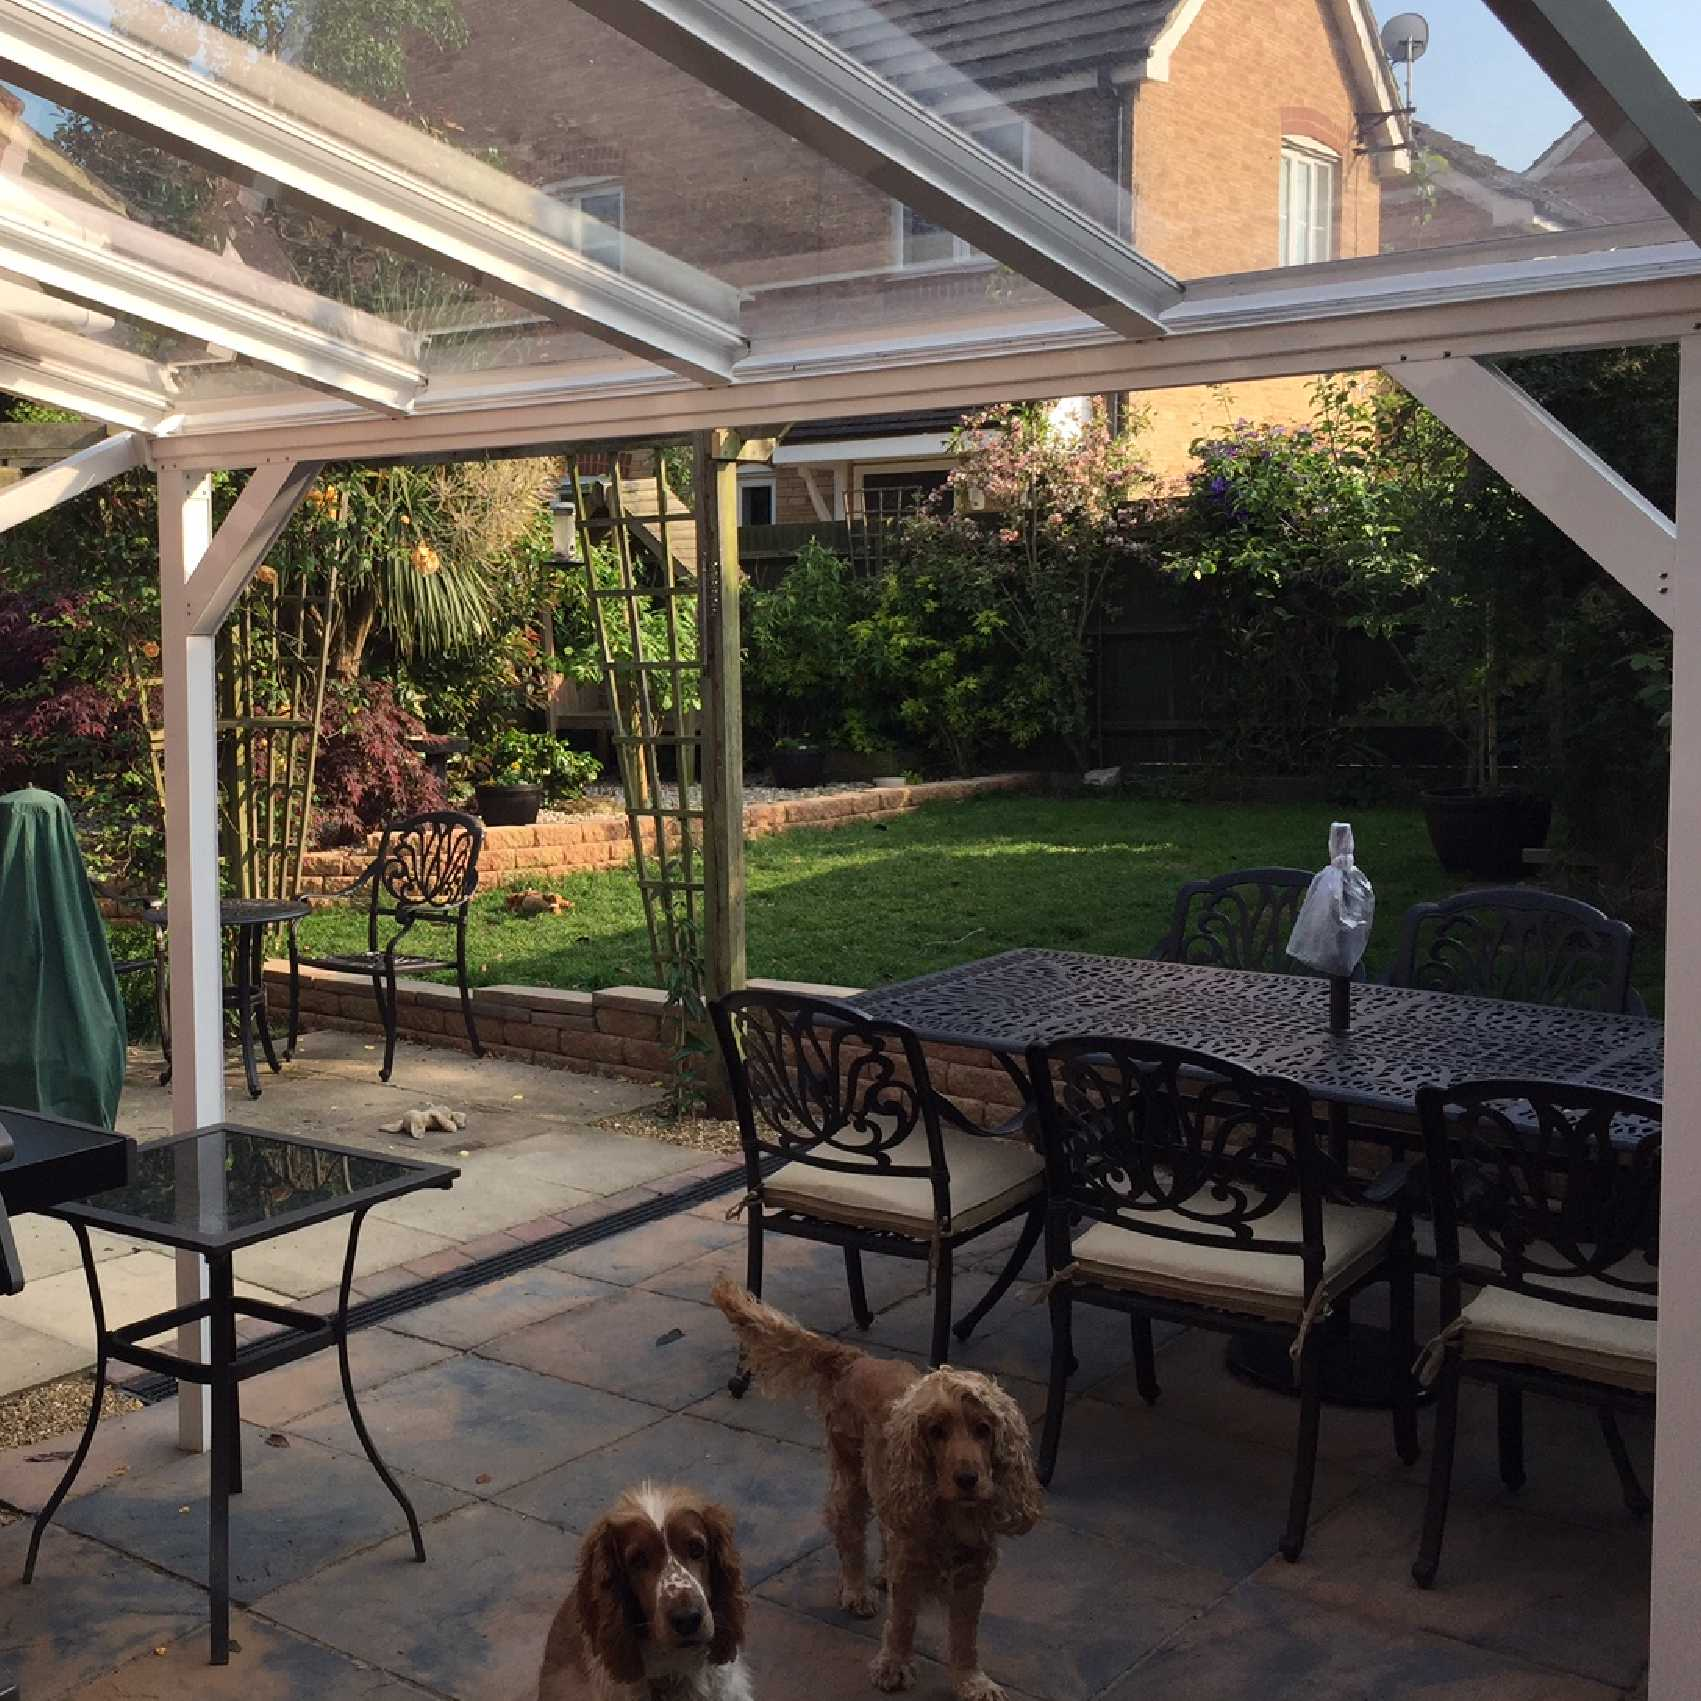 Affordable Omega Smart White Lean-To Canopy with 6mm Glass Clear Plate Polycarbonate Glazing - 8.4m (W) x 3.5m (P), (4) Supporting Posts